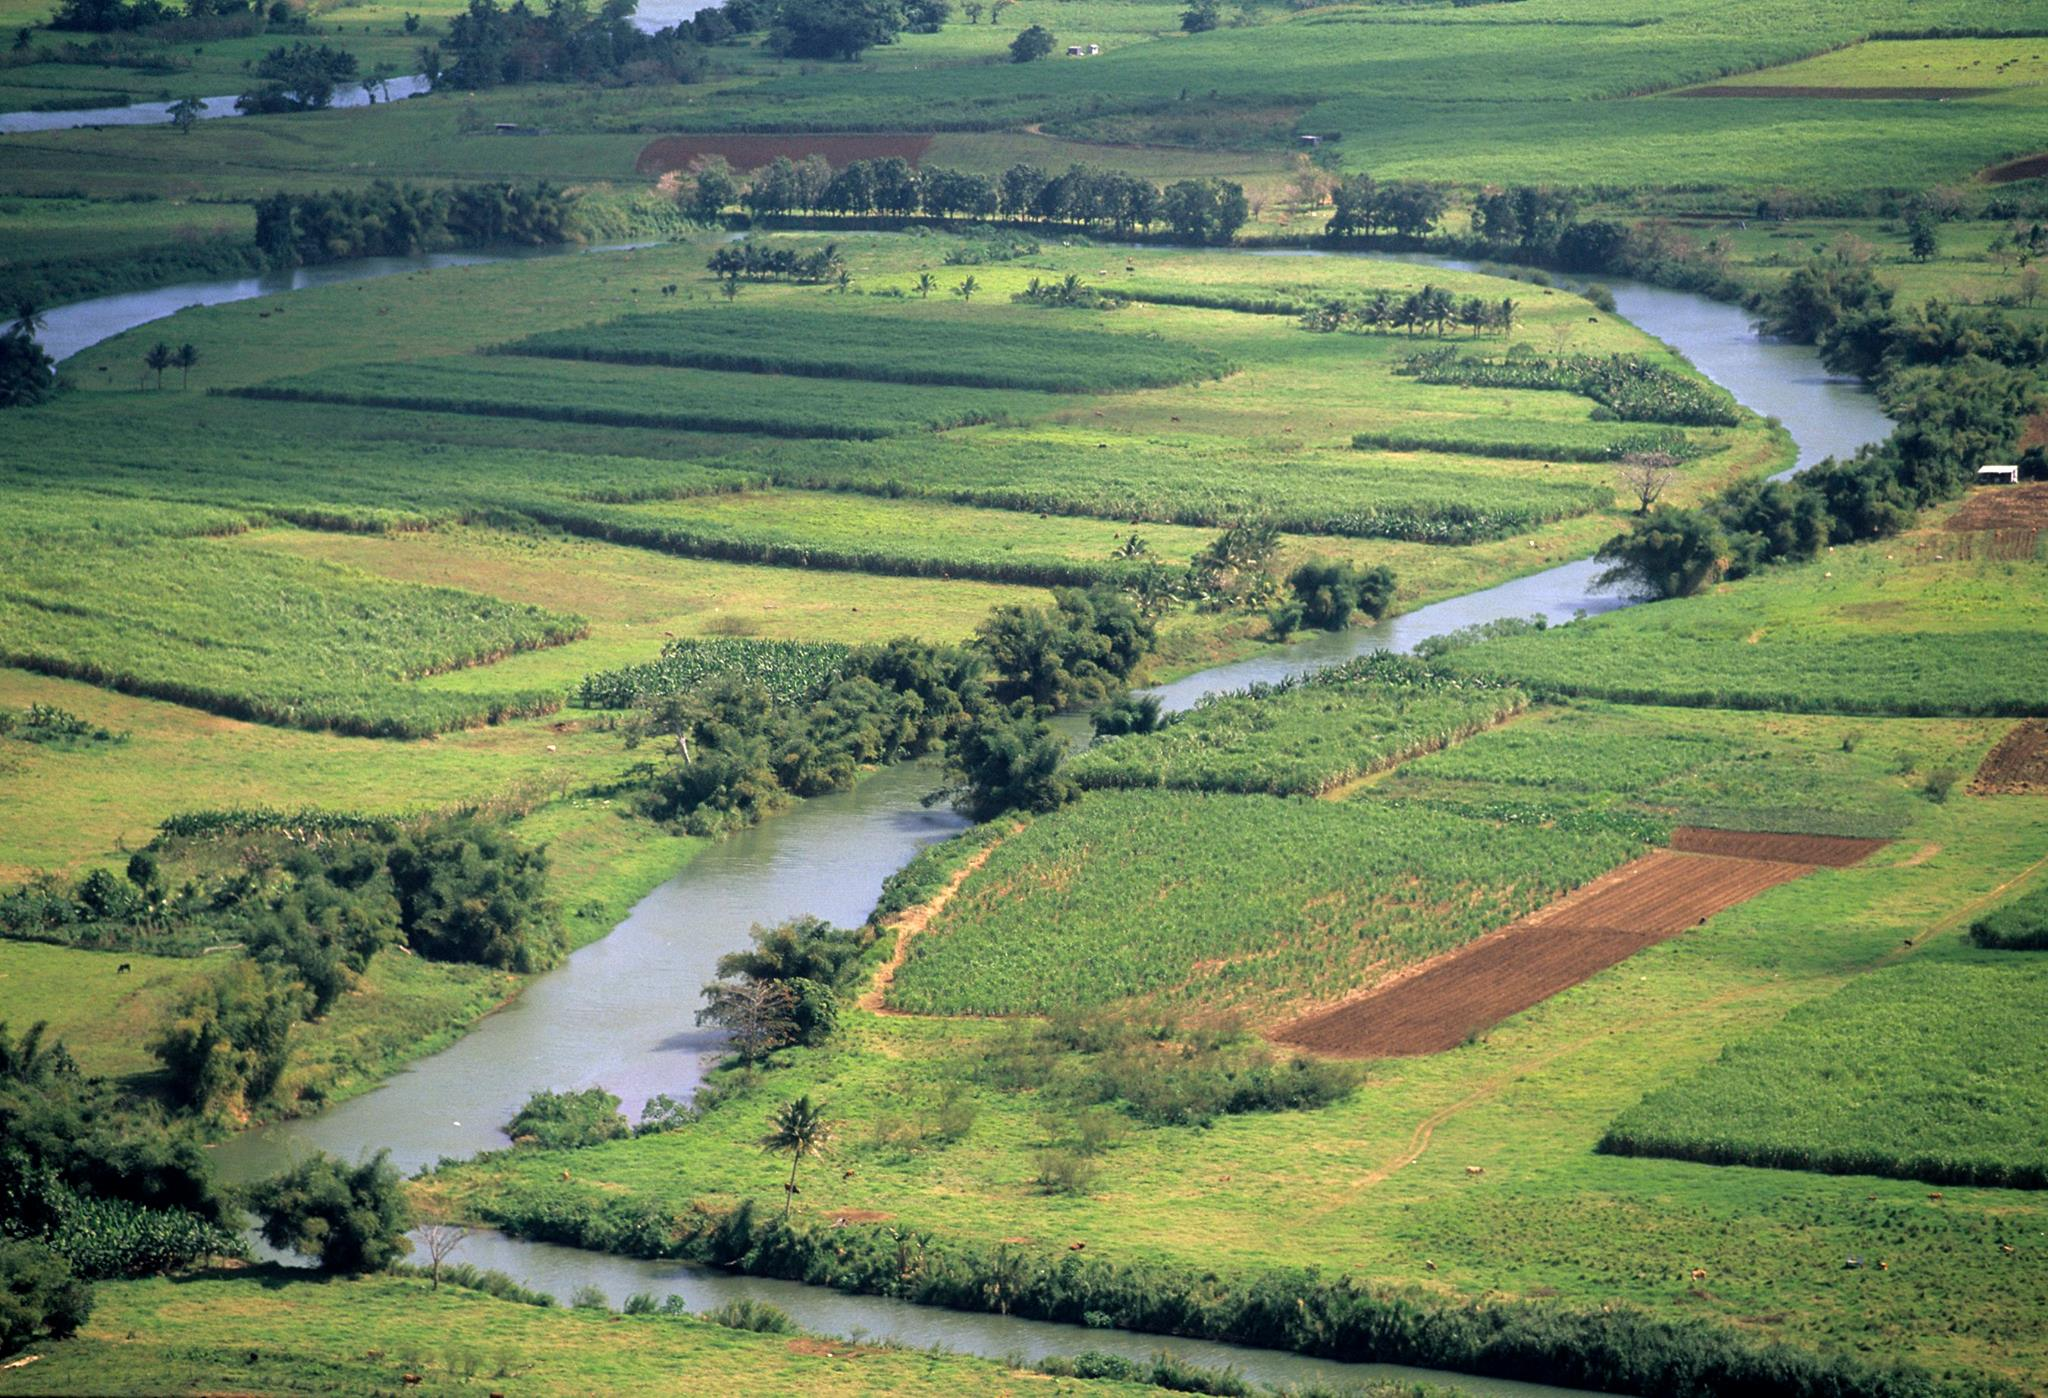 fields and river seen at cycling camp in Guadeloupe